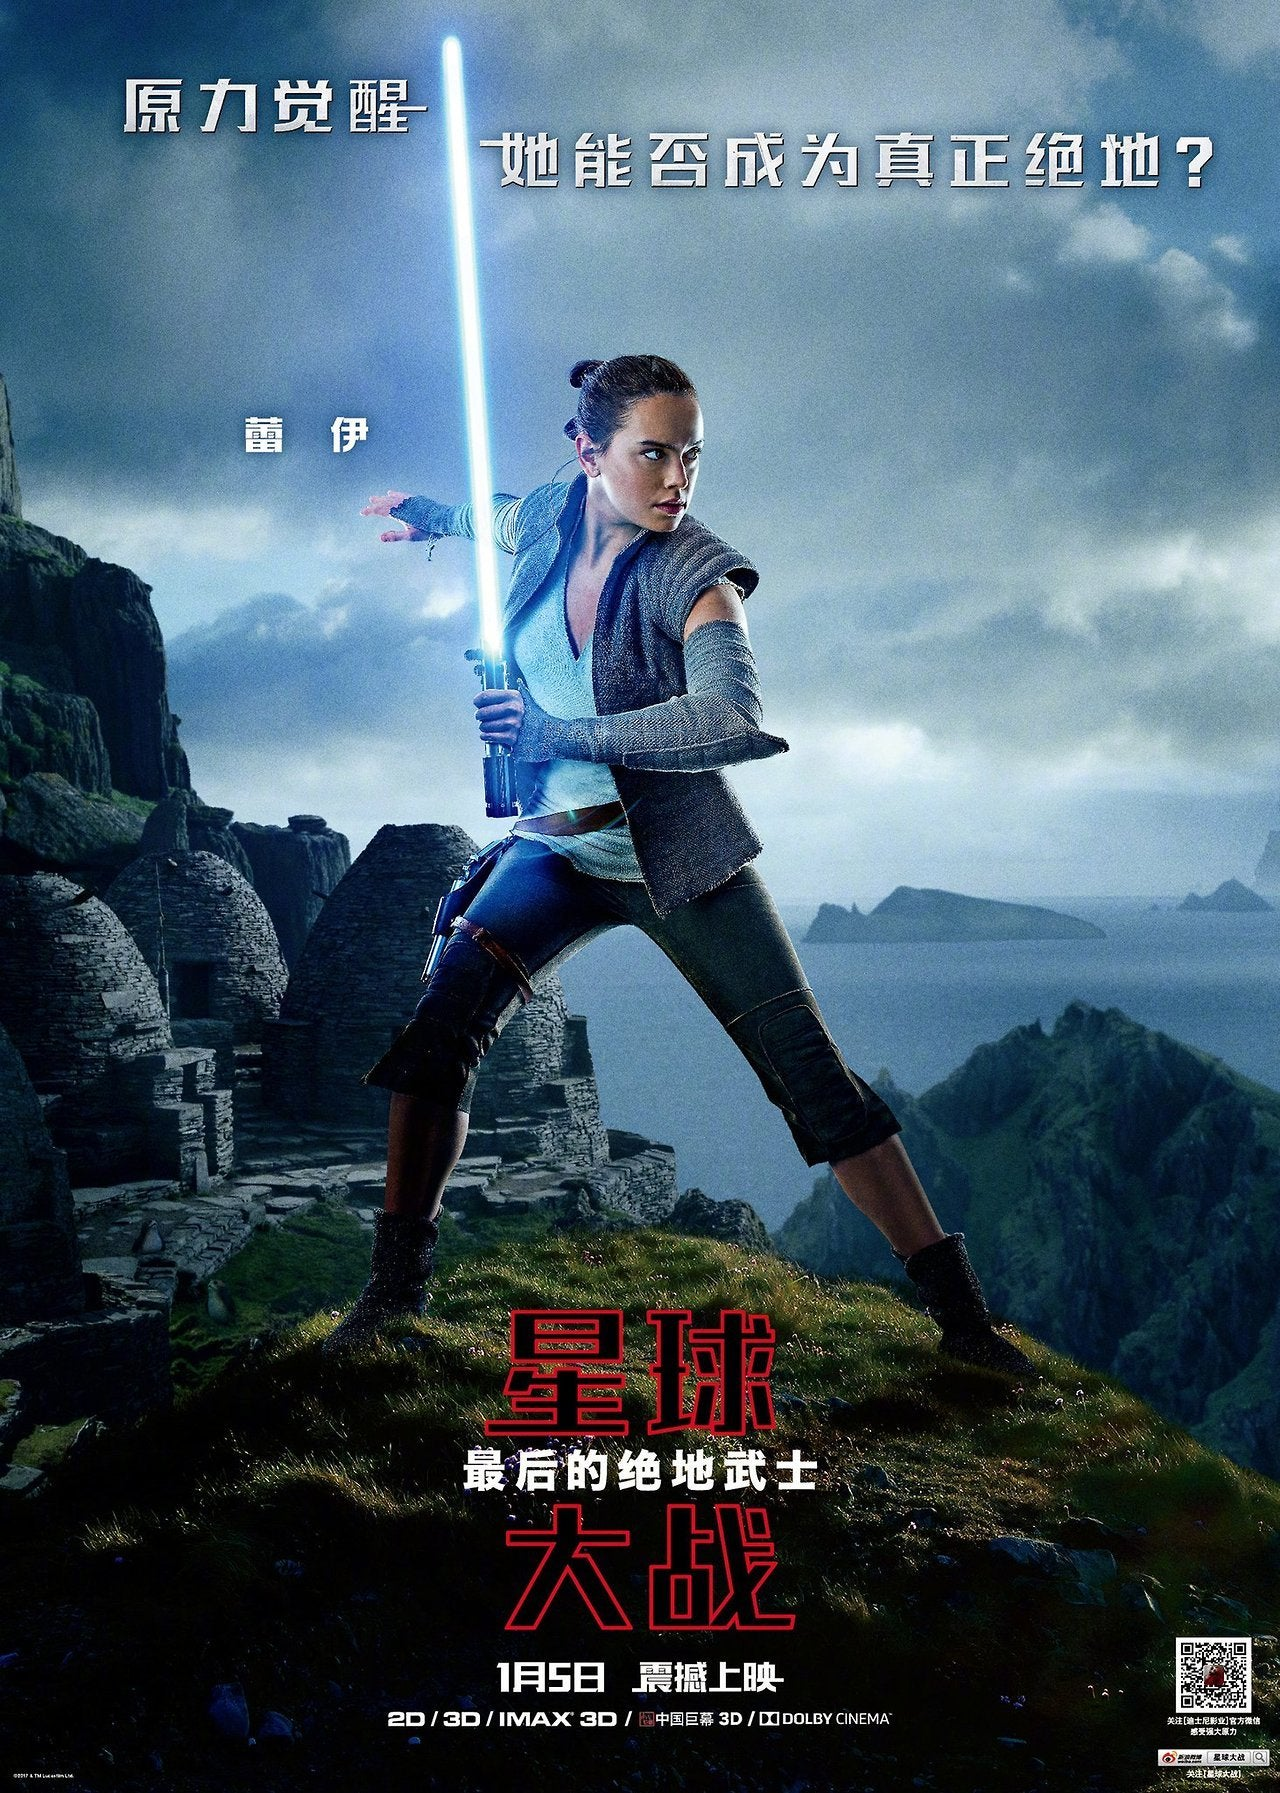 star wars the last jedi poster daisy ridley rey